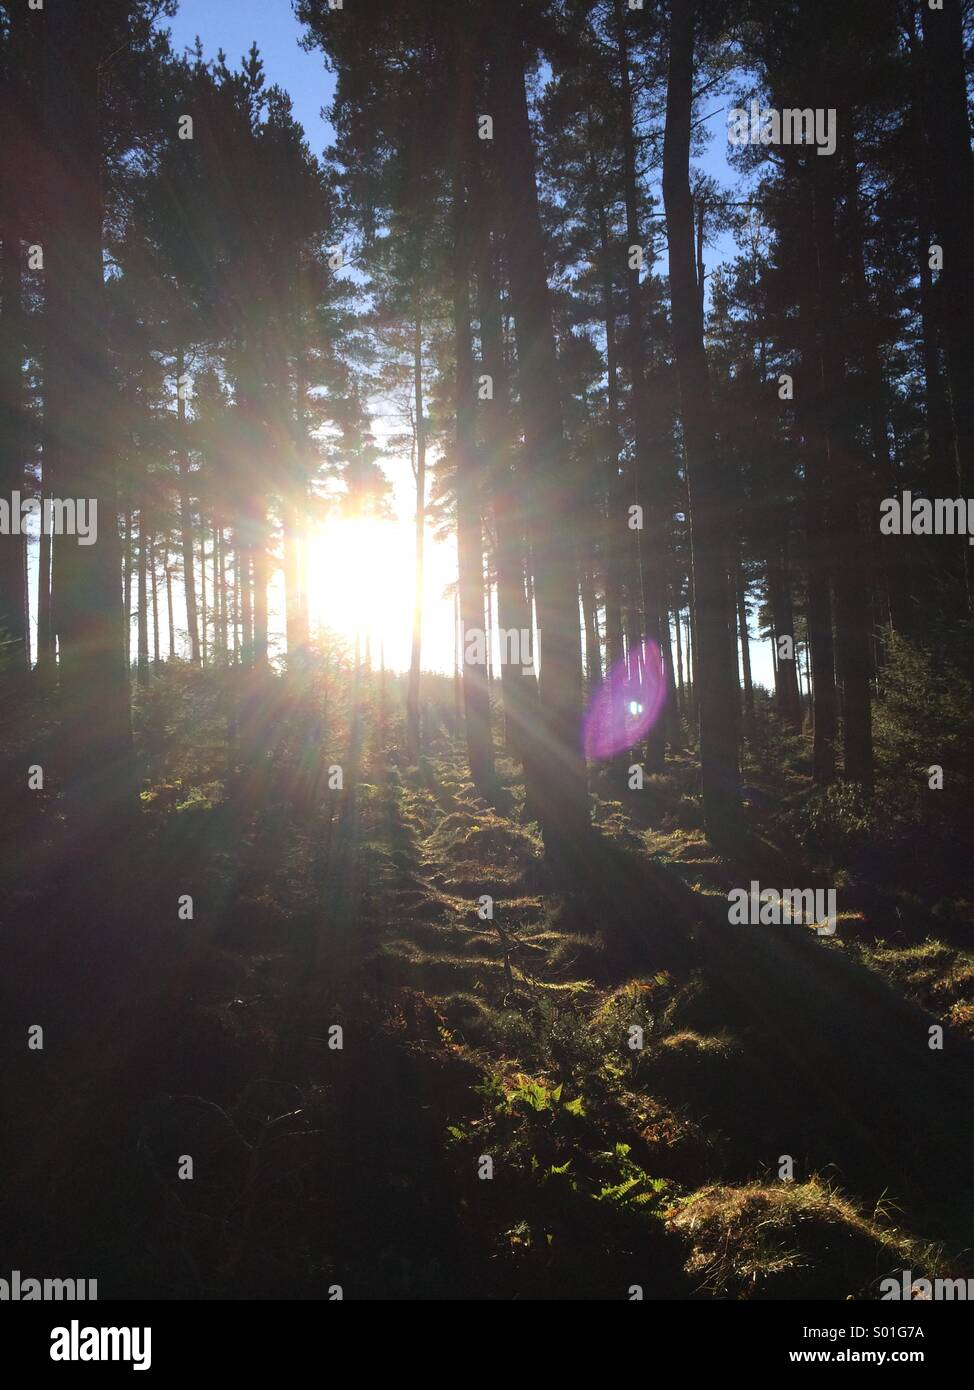 Sunlight shining through pine trees in a forest in Northumberland, England. Stock Photo